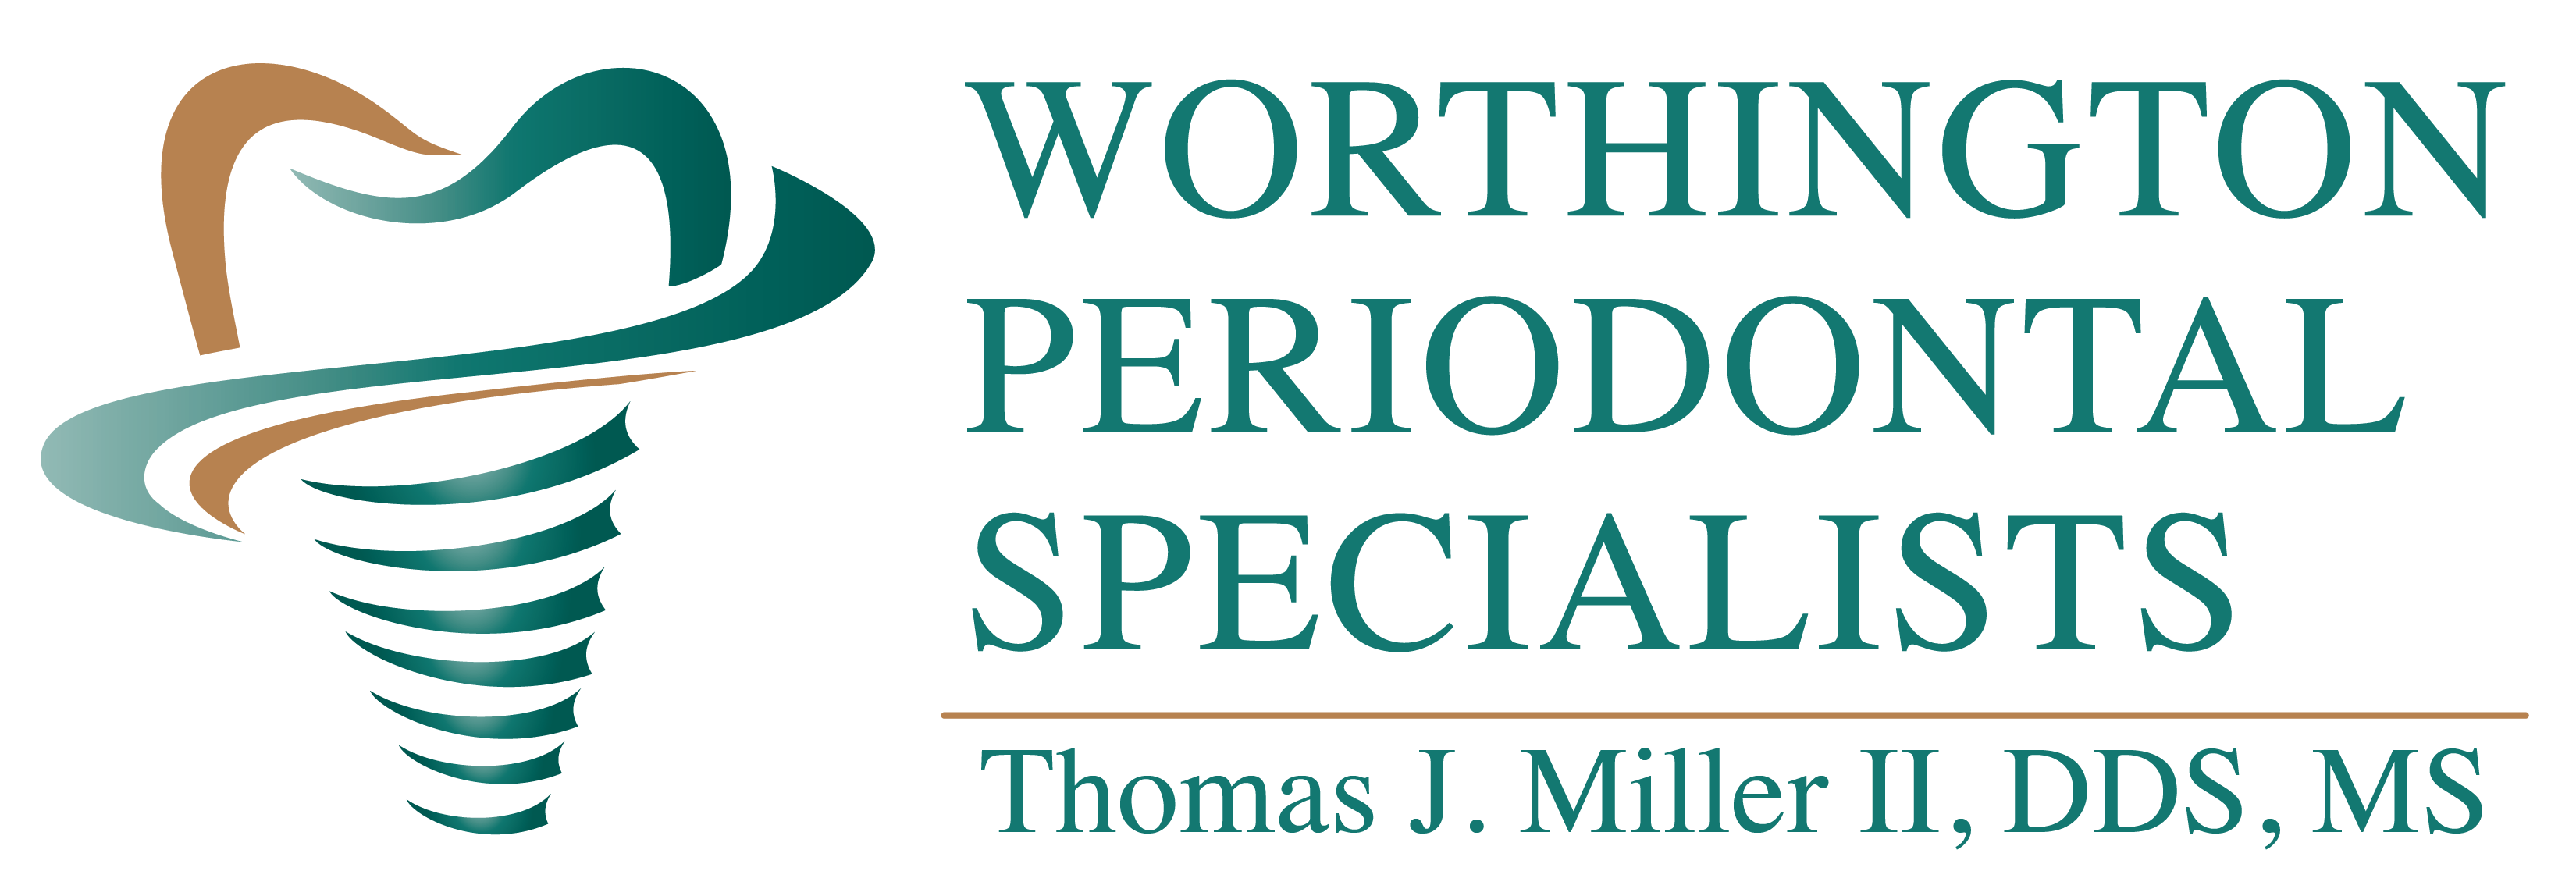 Worthington Perio logo